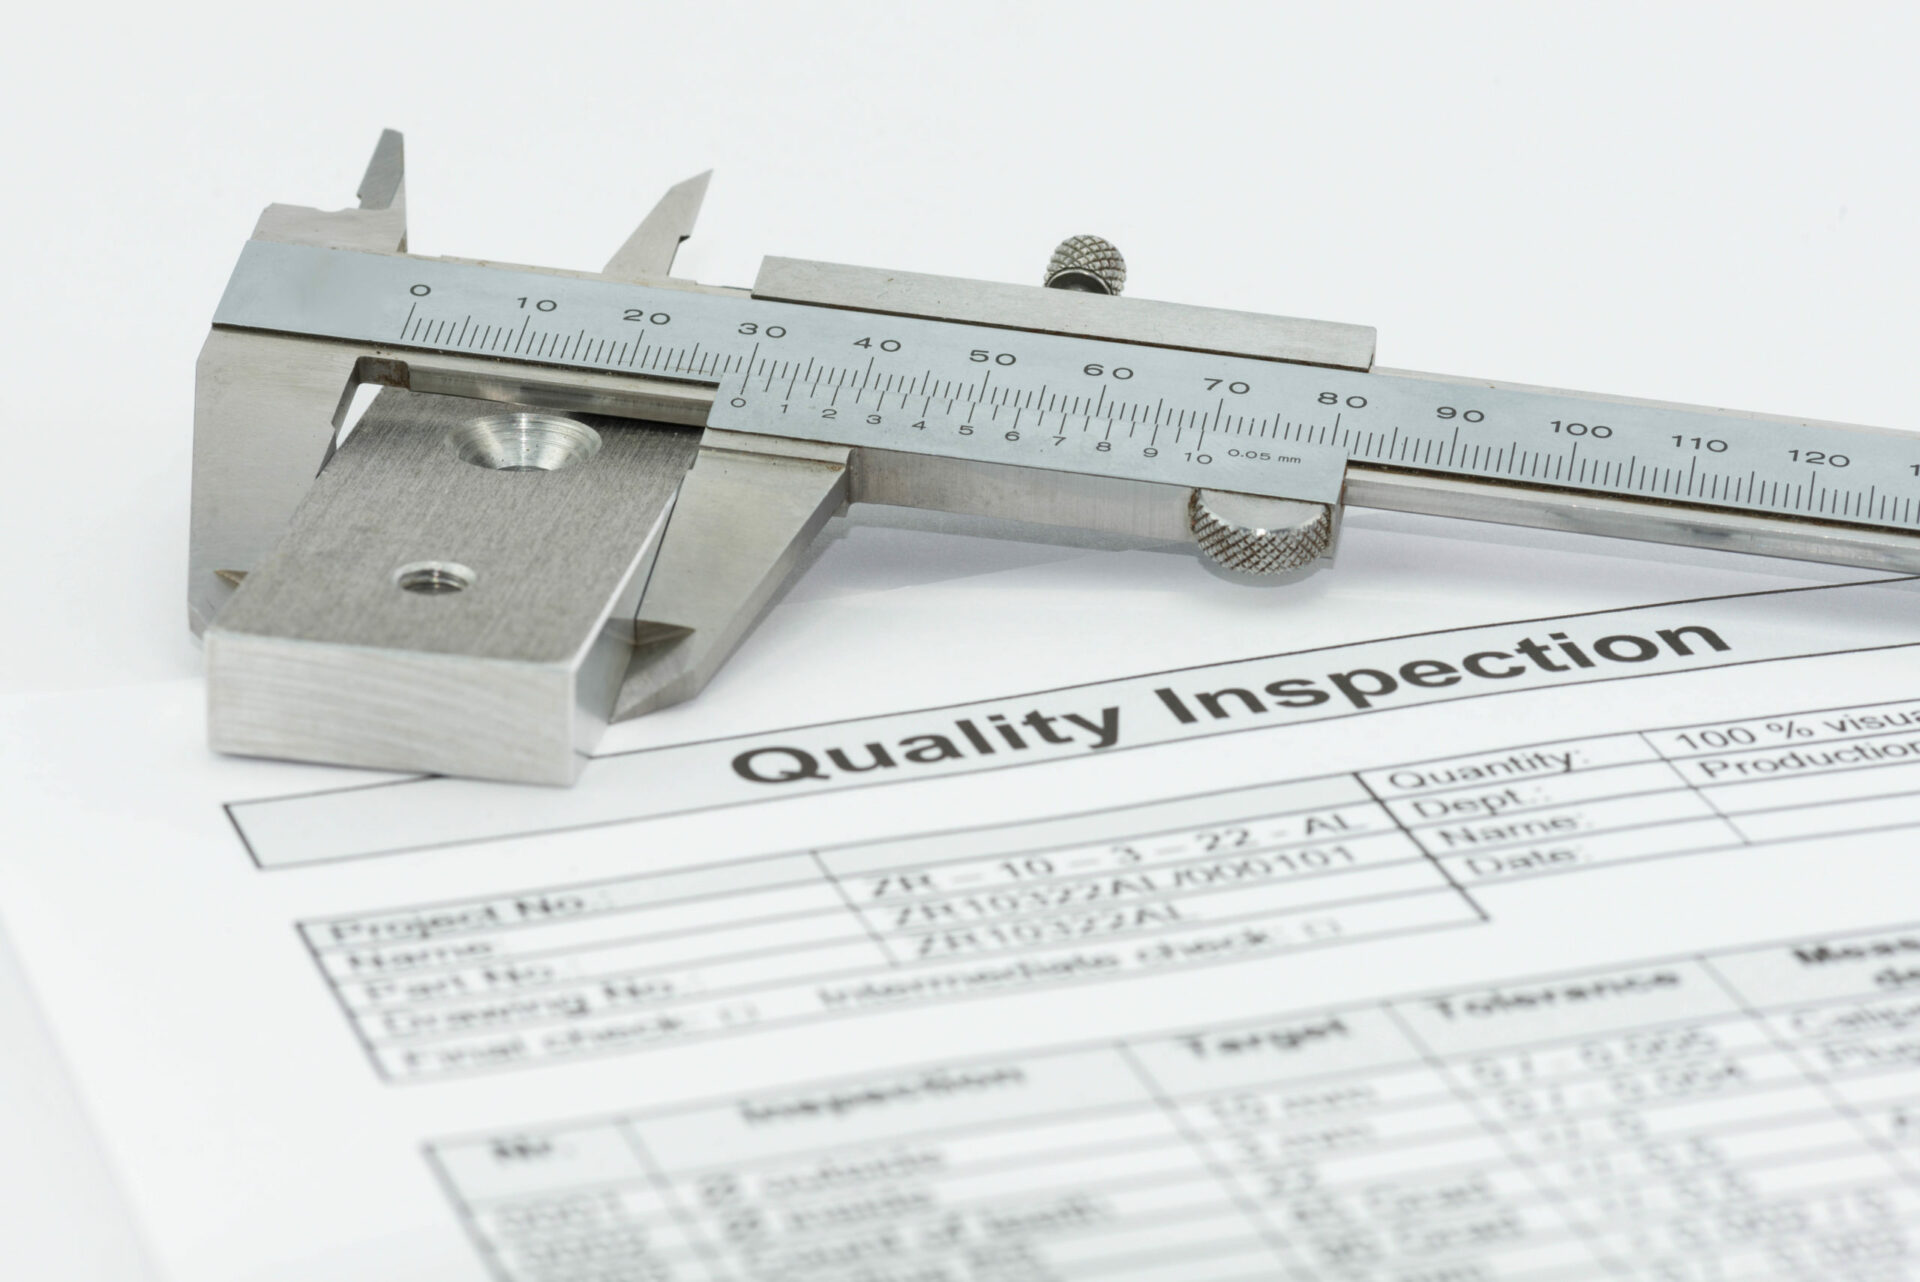 Quality,Management,With,Measuring,Equipment,And,Measurement,Report